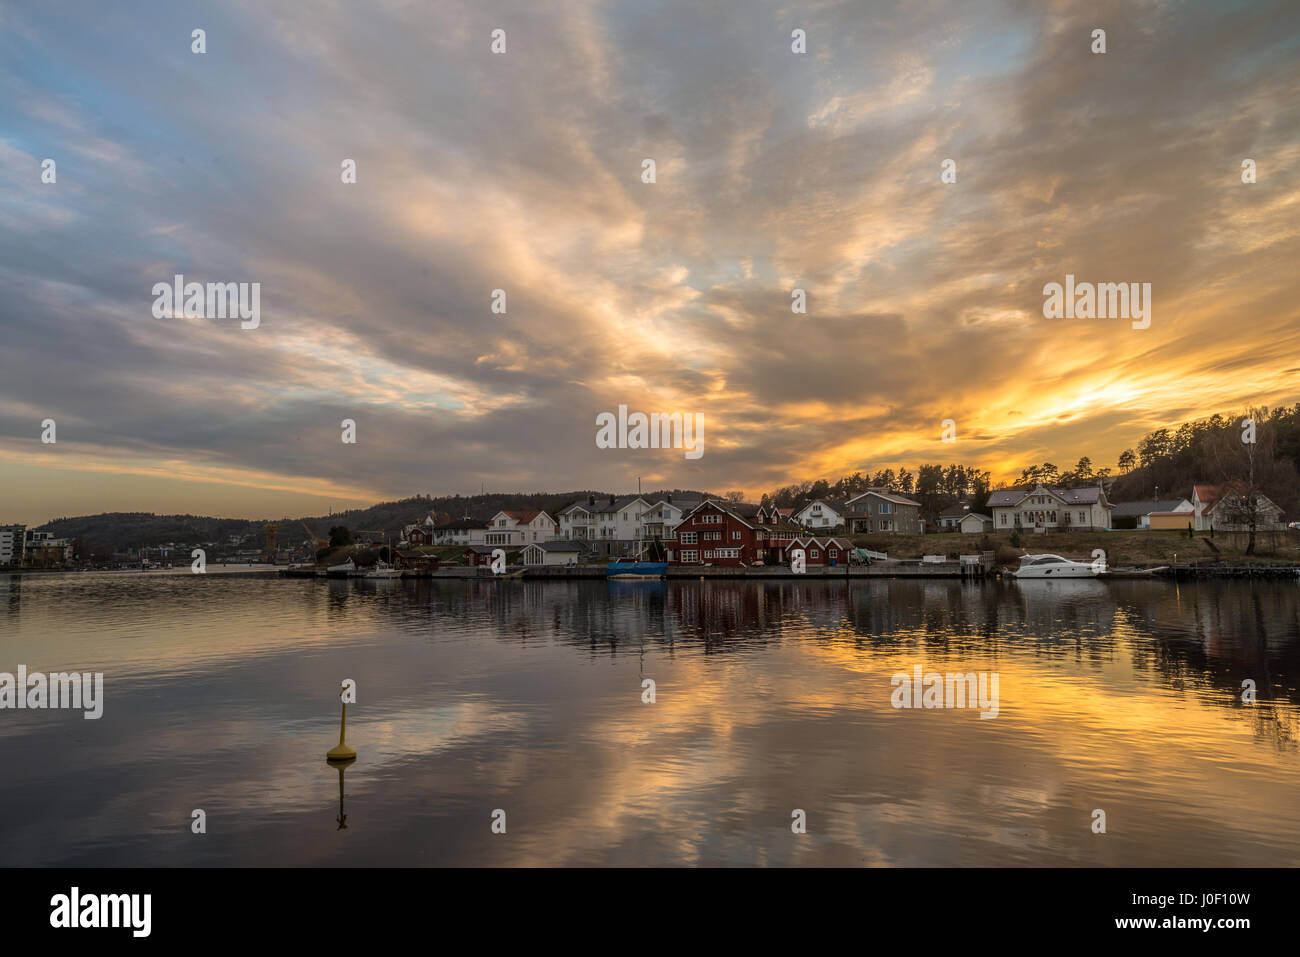 Sun setting over Porsgrunn city and river with an explosion of light - Norway - Stock Image